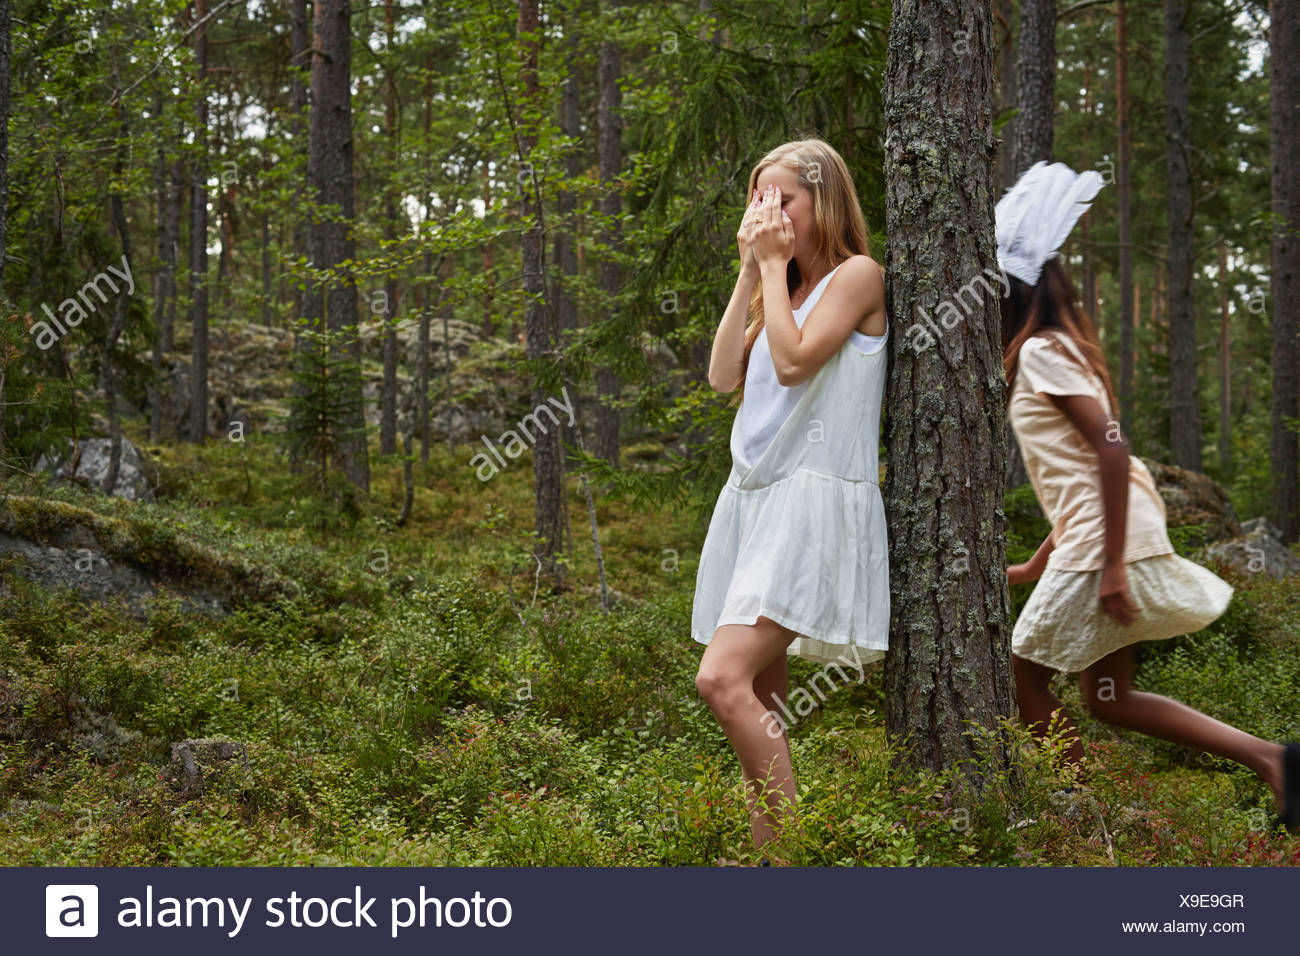 Teenage girls playing hide and seek in forest Stock Photo